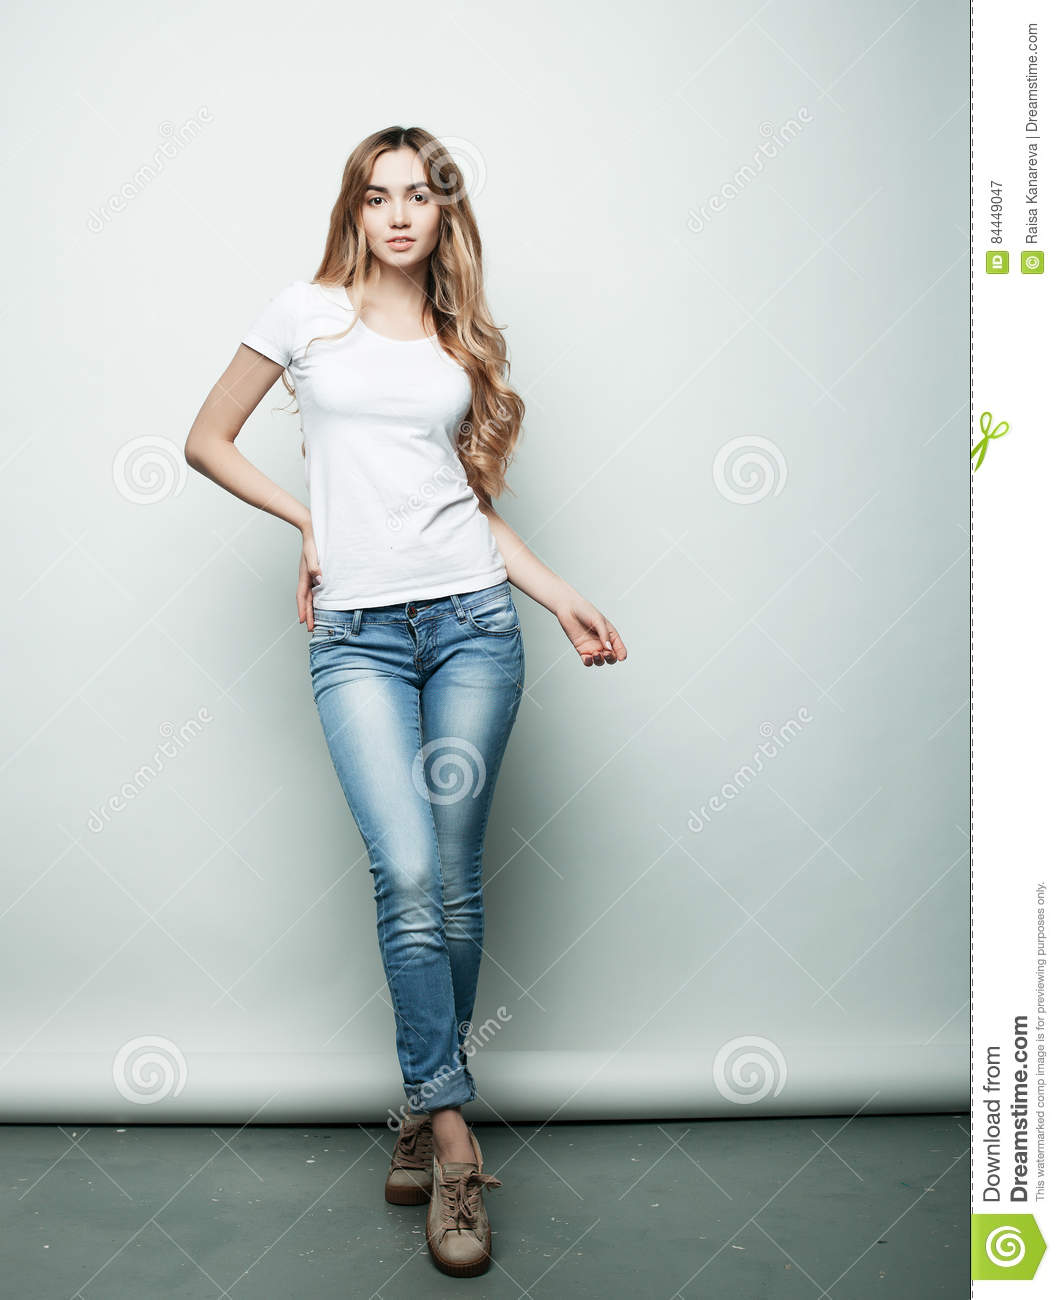 Lifestyle. Fashion And People Concept: Full Body Young Fashion Woman Model Posing In Studio Stock Image - Image of background. girl: 84449047